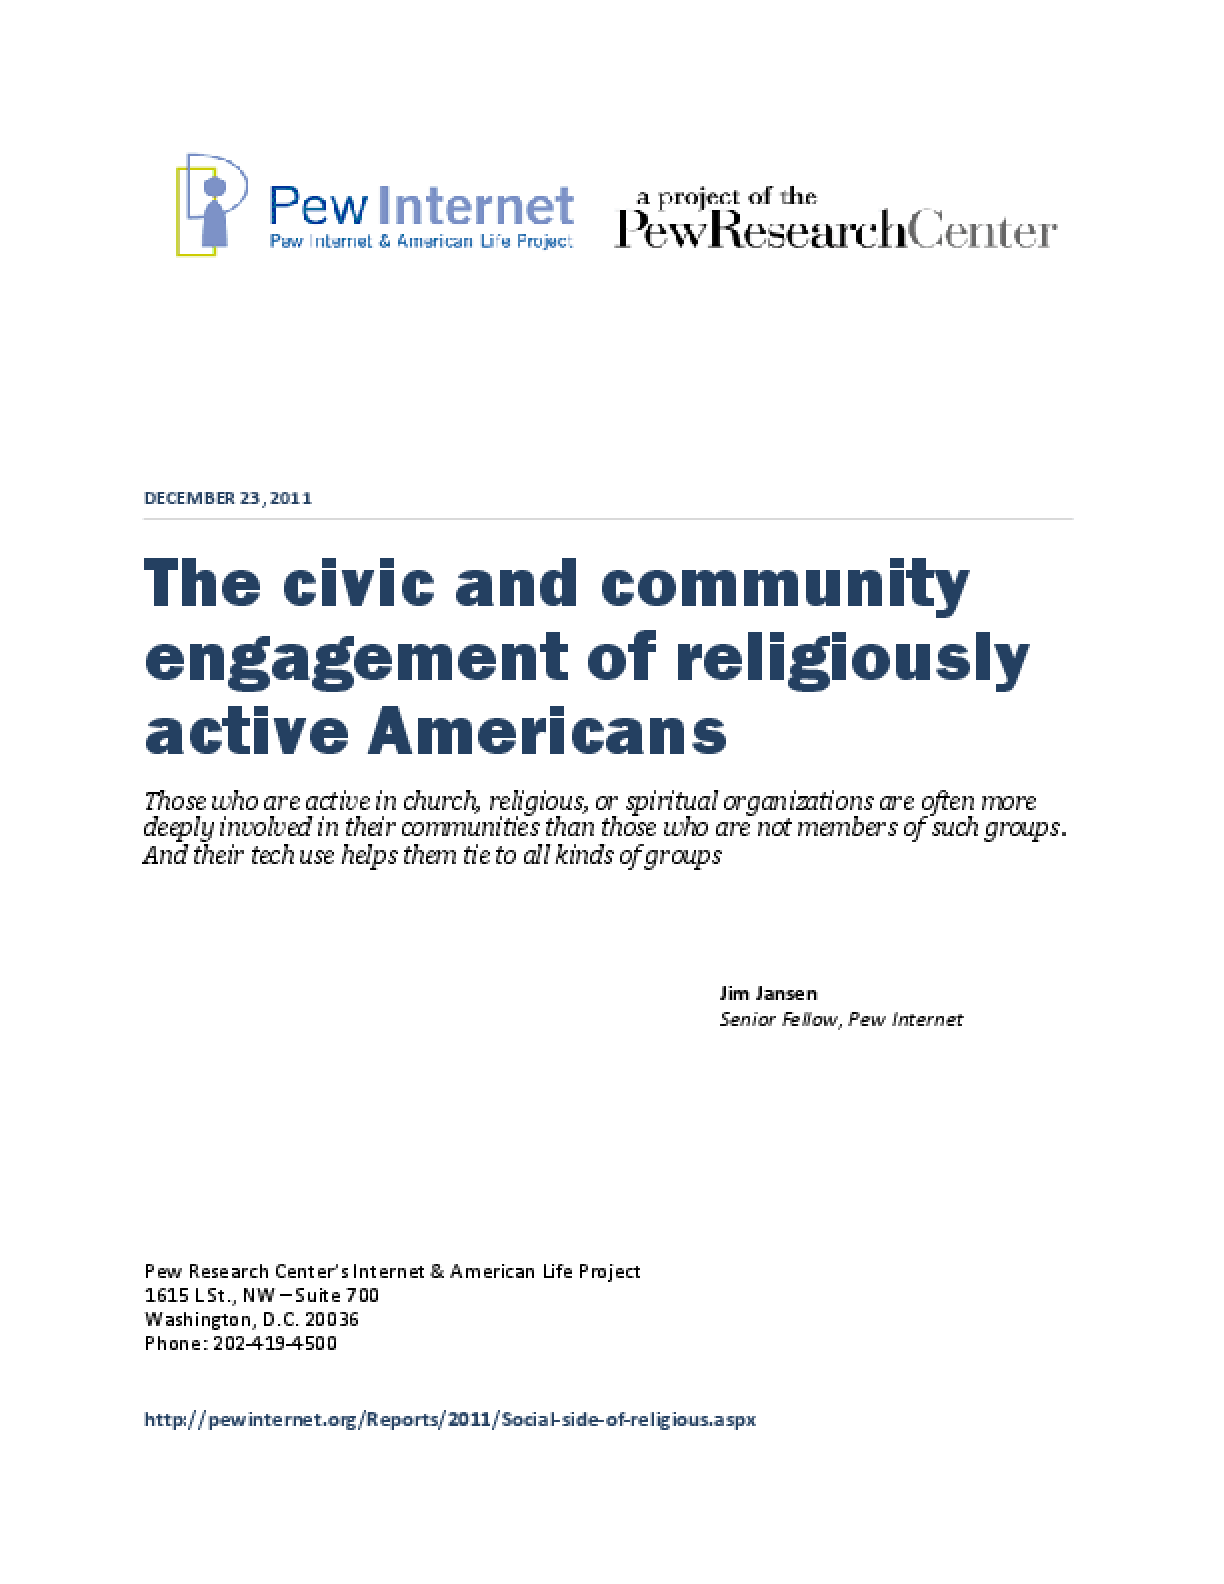 The Civic and Community Engagement of Religiously Active Americans